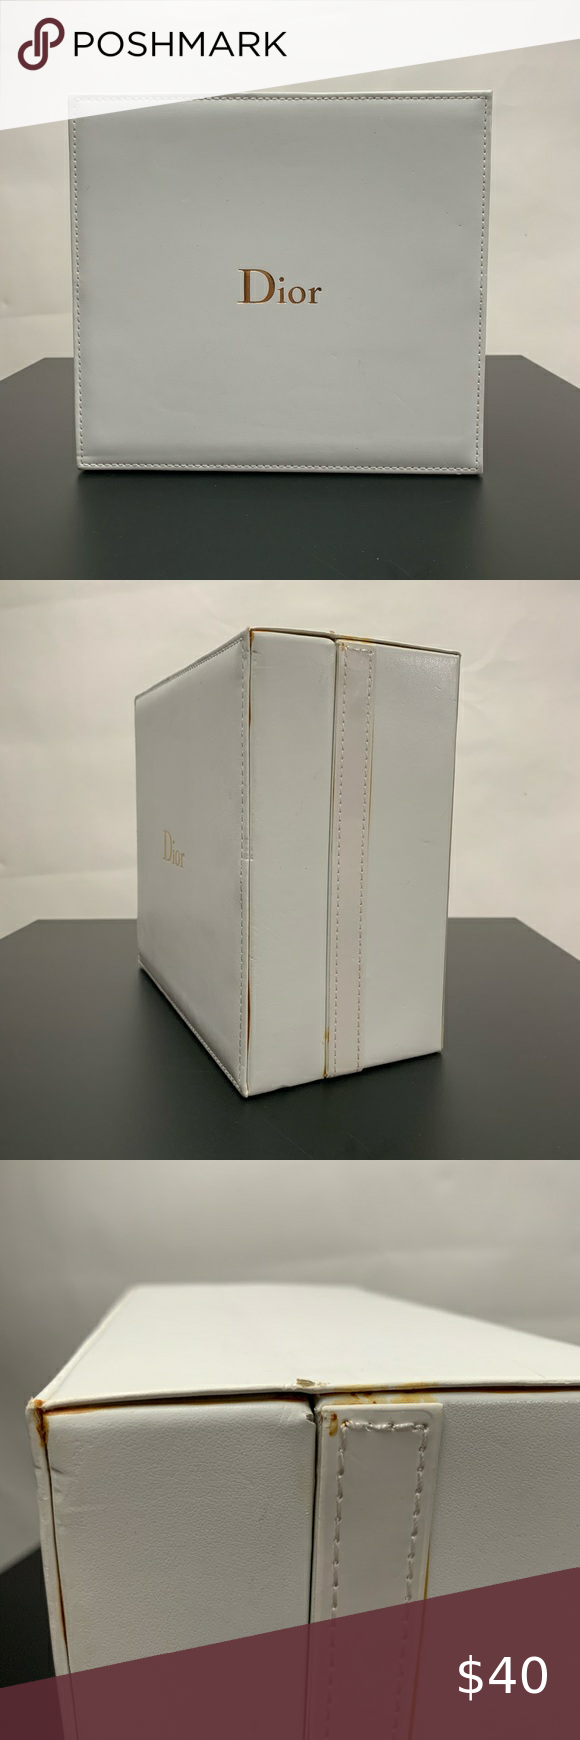 23++ Large white leather jewelry box ideas in 2021